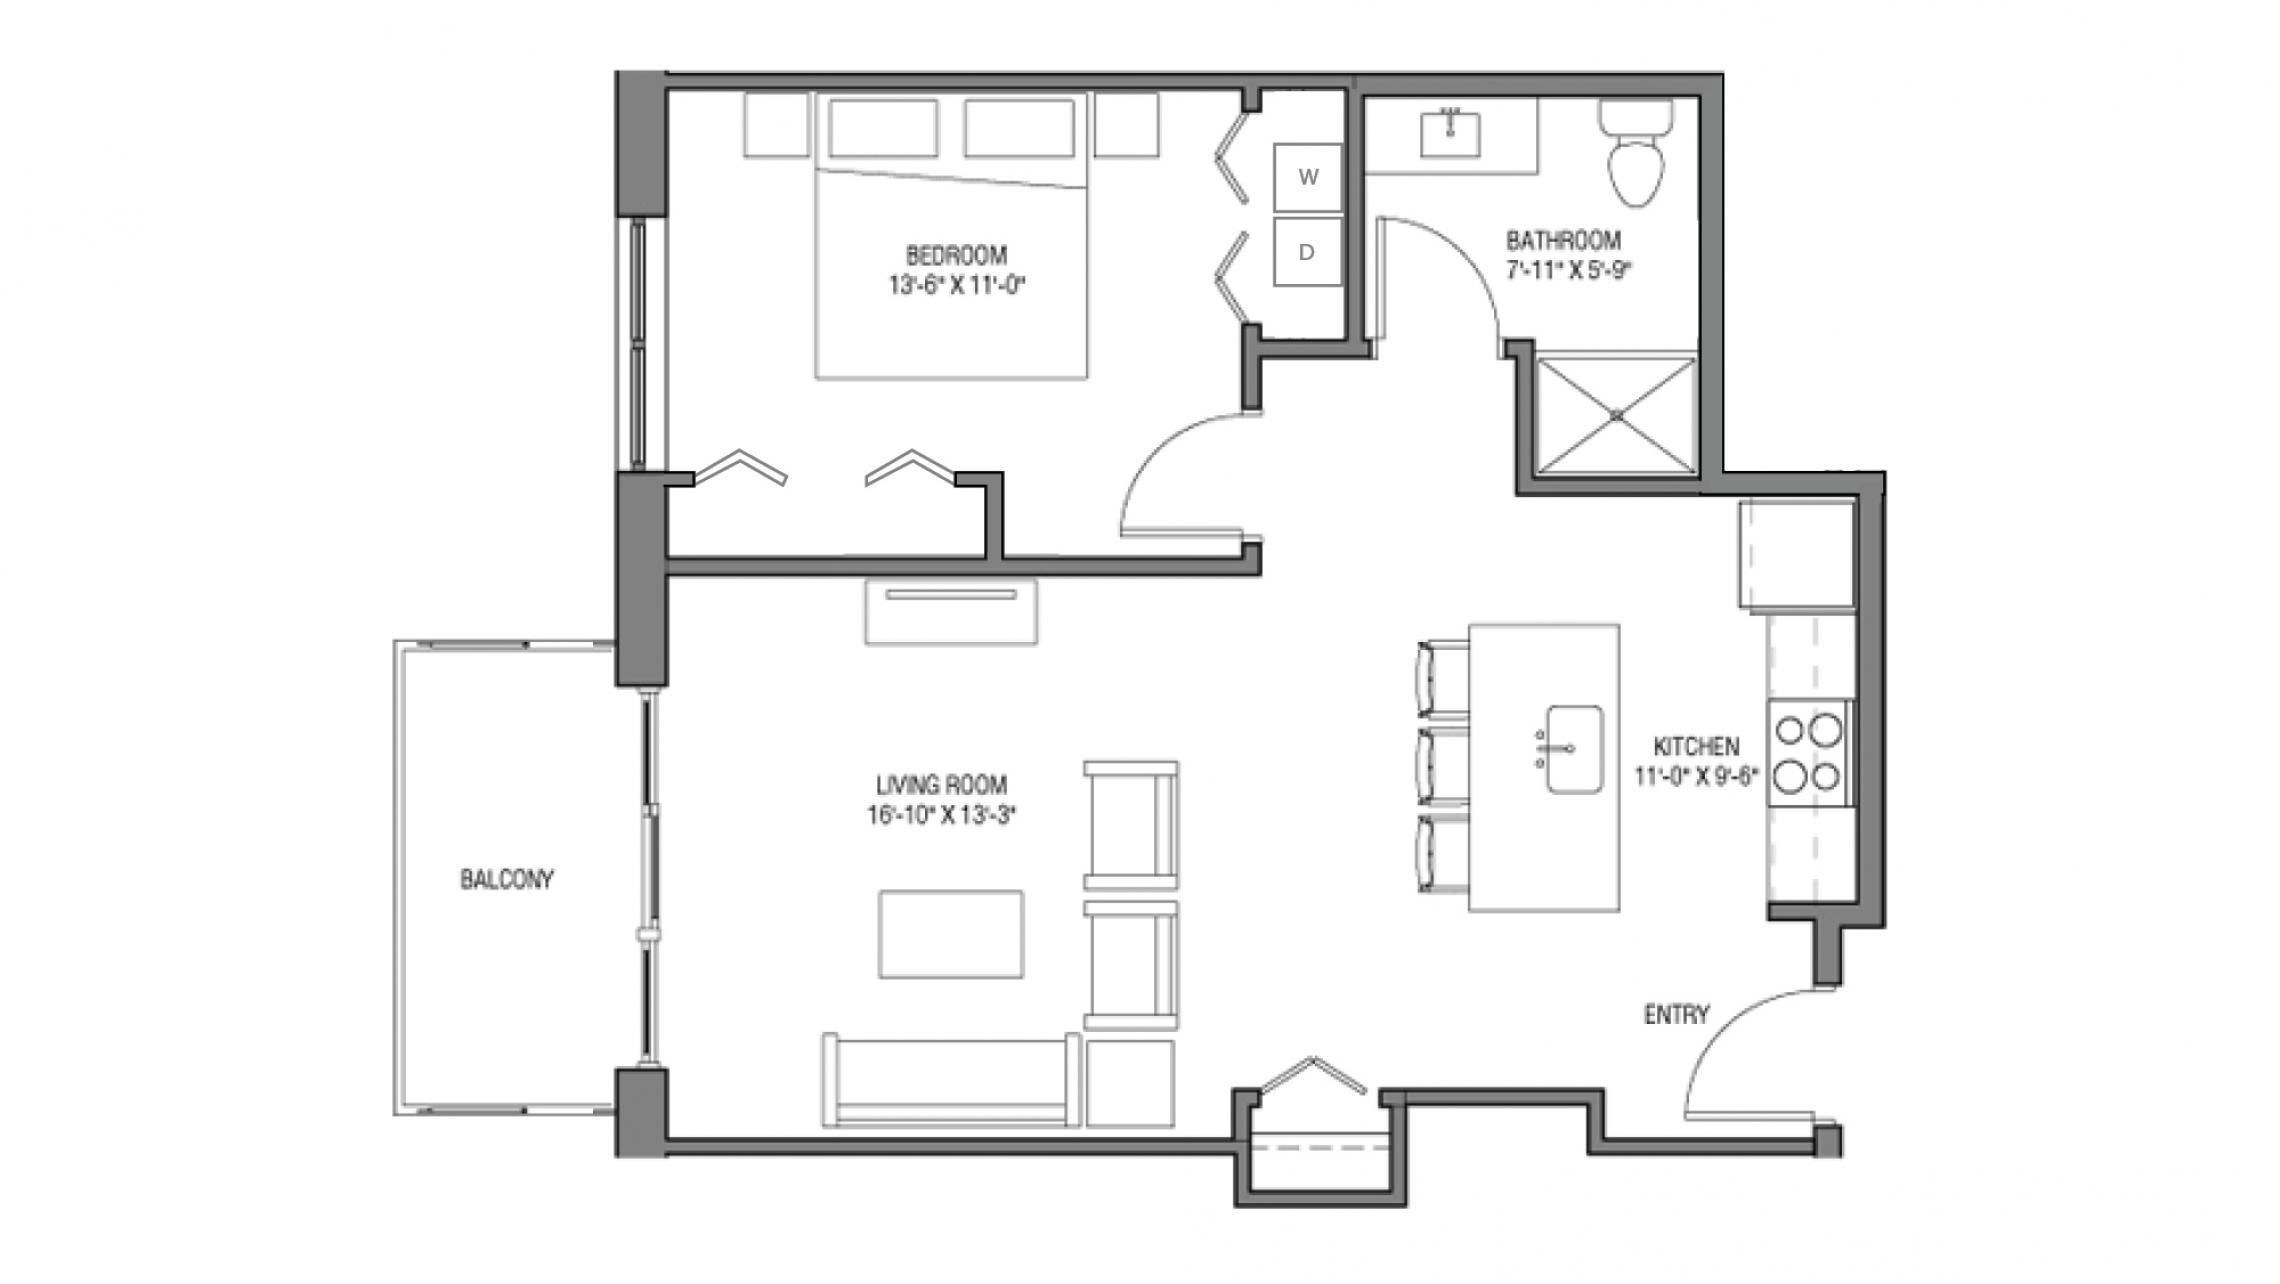 ULI One Bedroom Accessible Floorplan